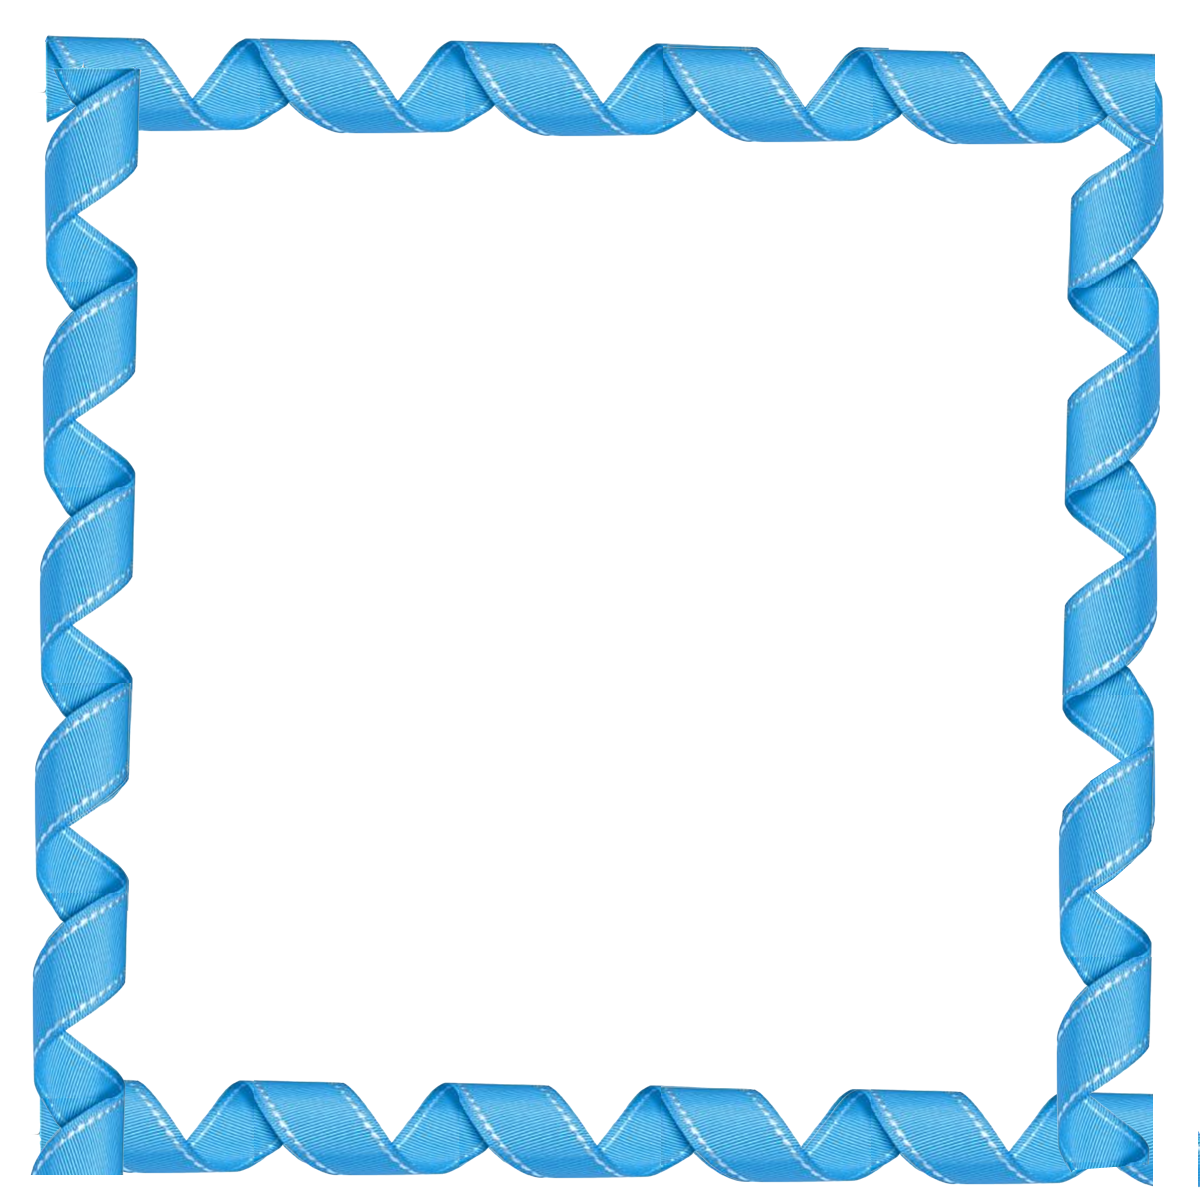 Free Scrapbooking Frames | Free Digital Scrapbook Elements: Free ...